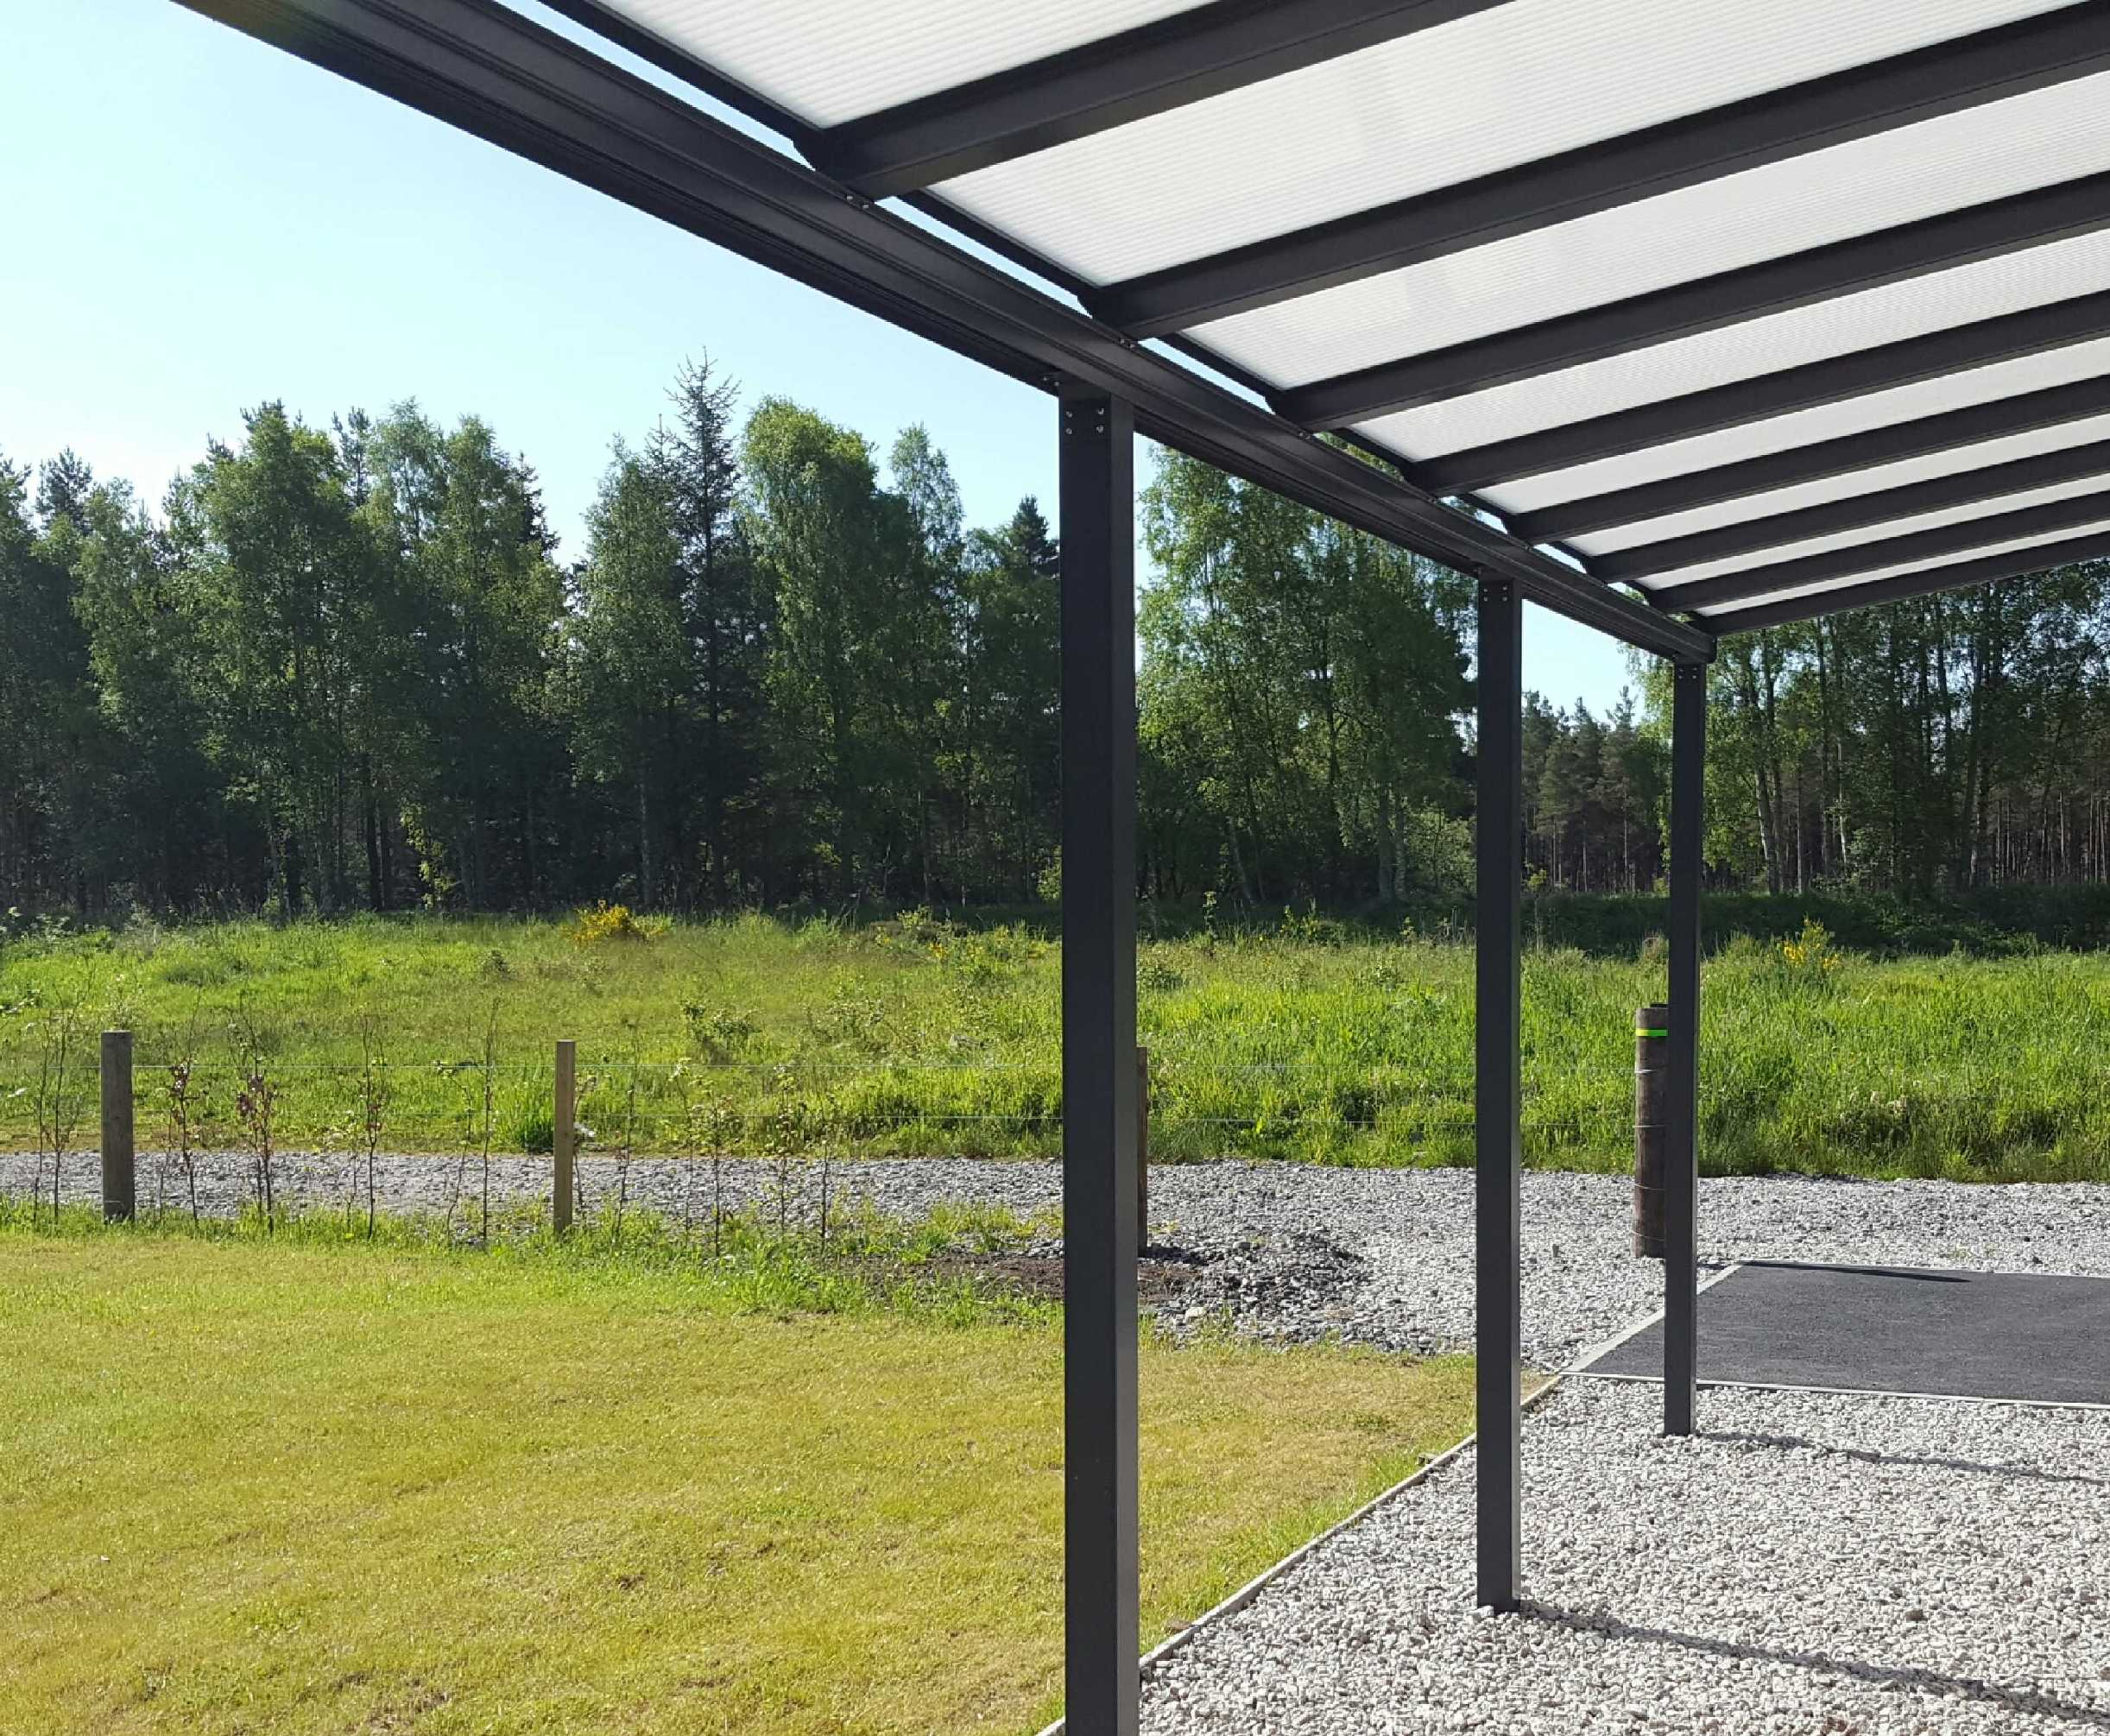 Omega Smart Lean-To Canopy, Anthracite Grey, UNGLAZED for 6mm Glazing - 8.4m (W) x 4.0m (P), (4) Supporting Posts